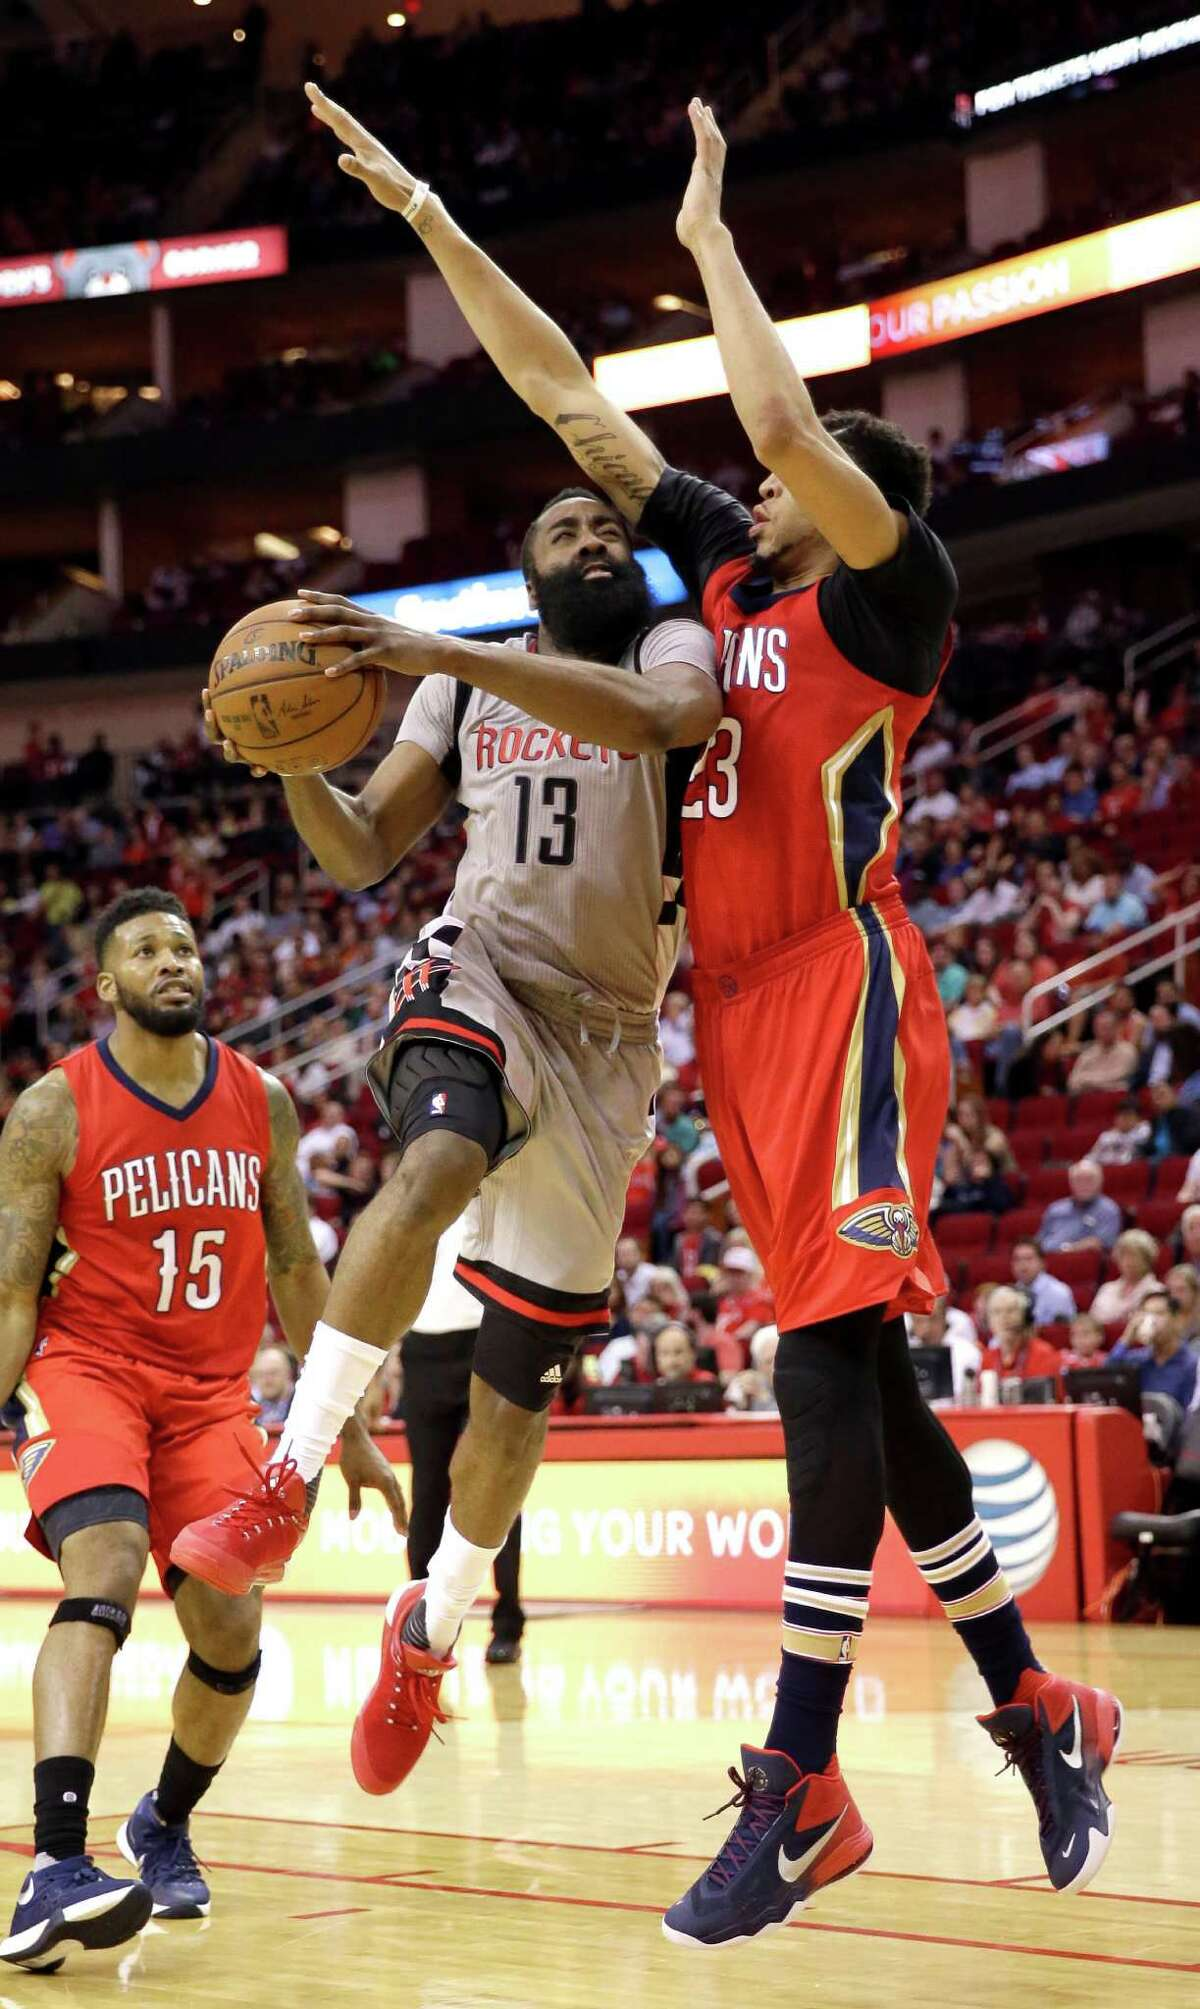 The Rockets' James Harden goes up for a shot as the Pelicans' Anthony Davis (23) defends. Harden had a game-high 39 points.